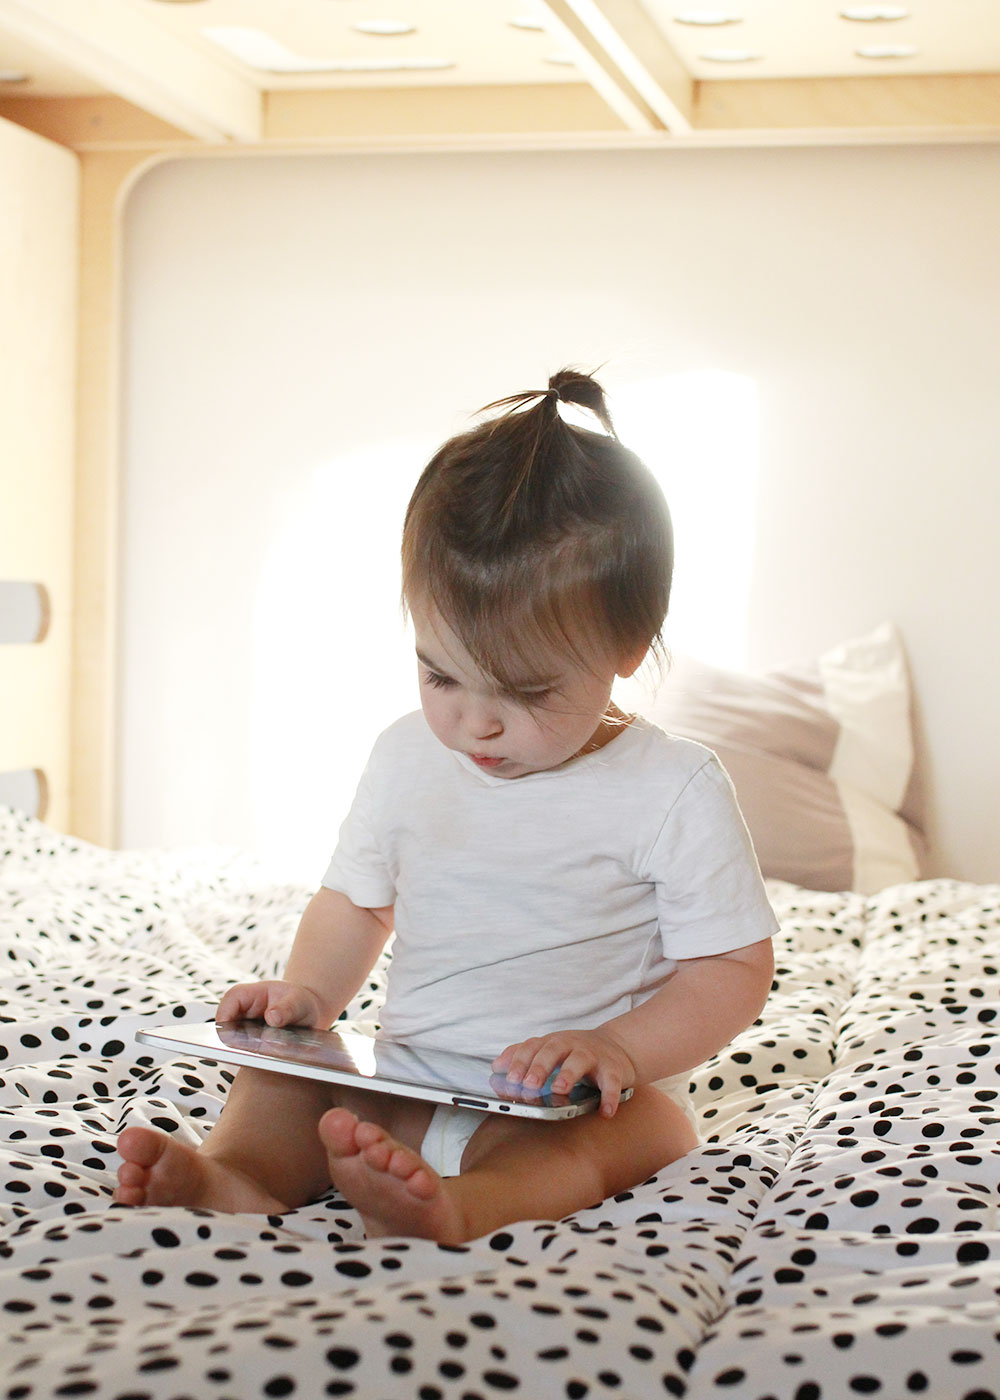 sweet boy checking out his big boy bed with the ipad and internet | thelovedesignedlife.com